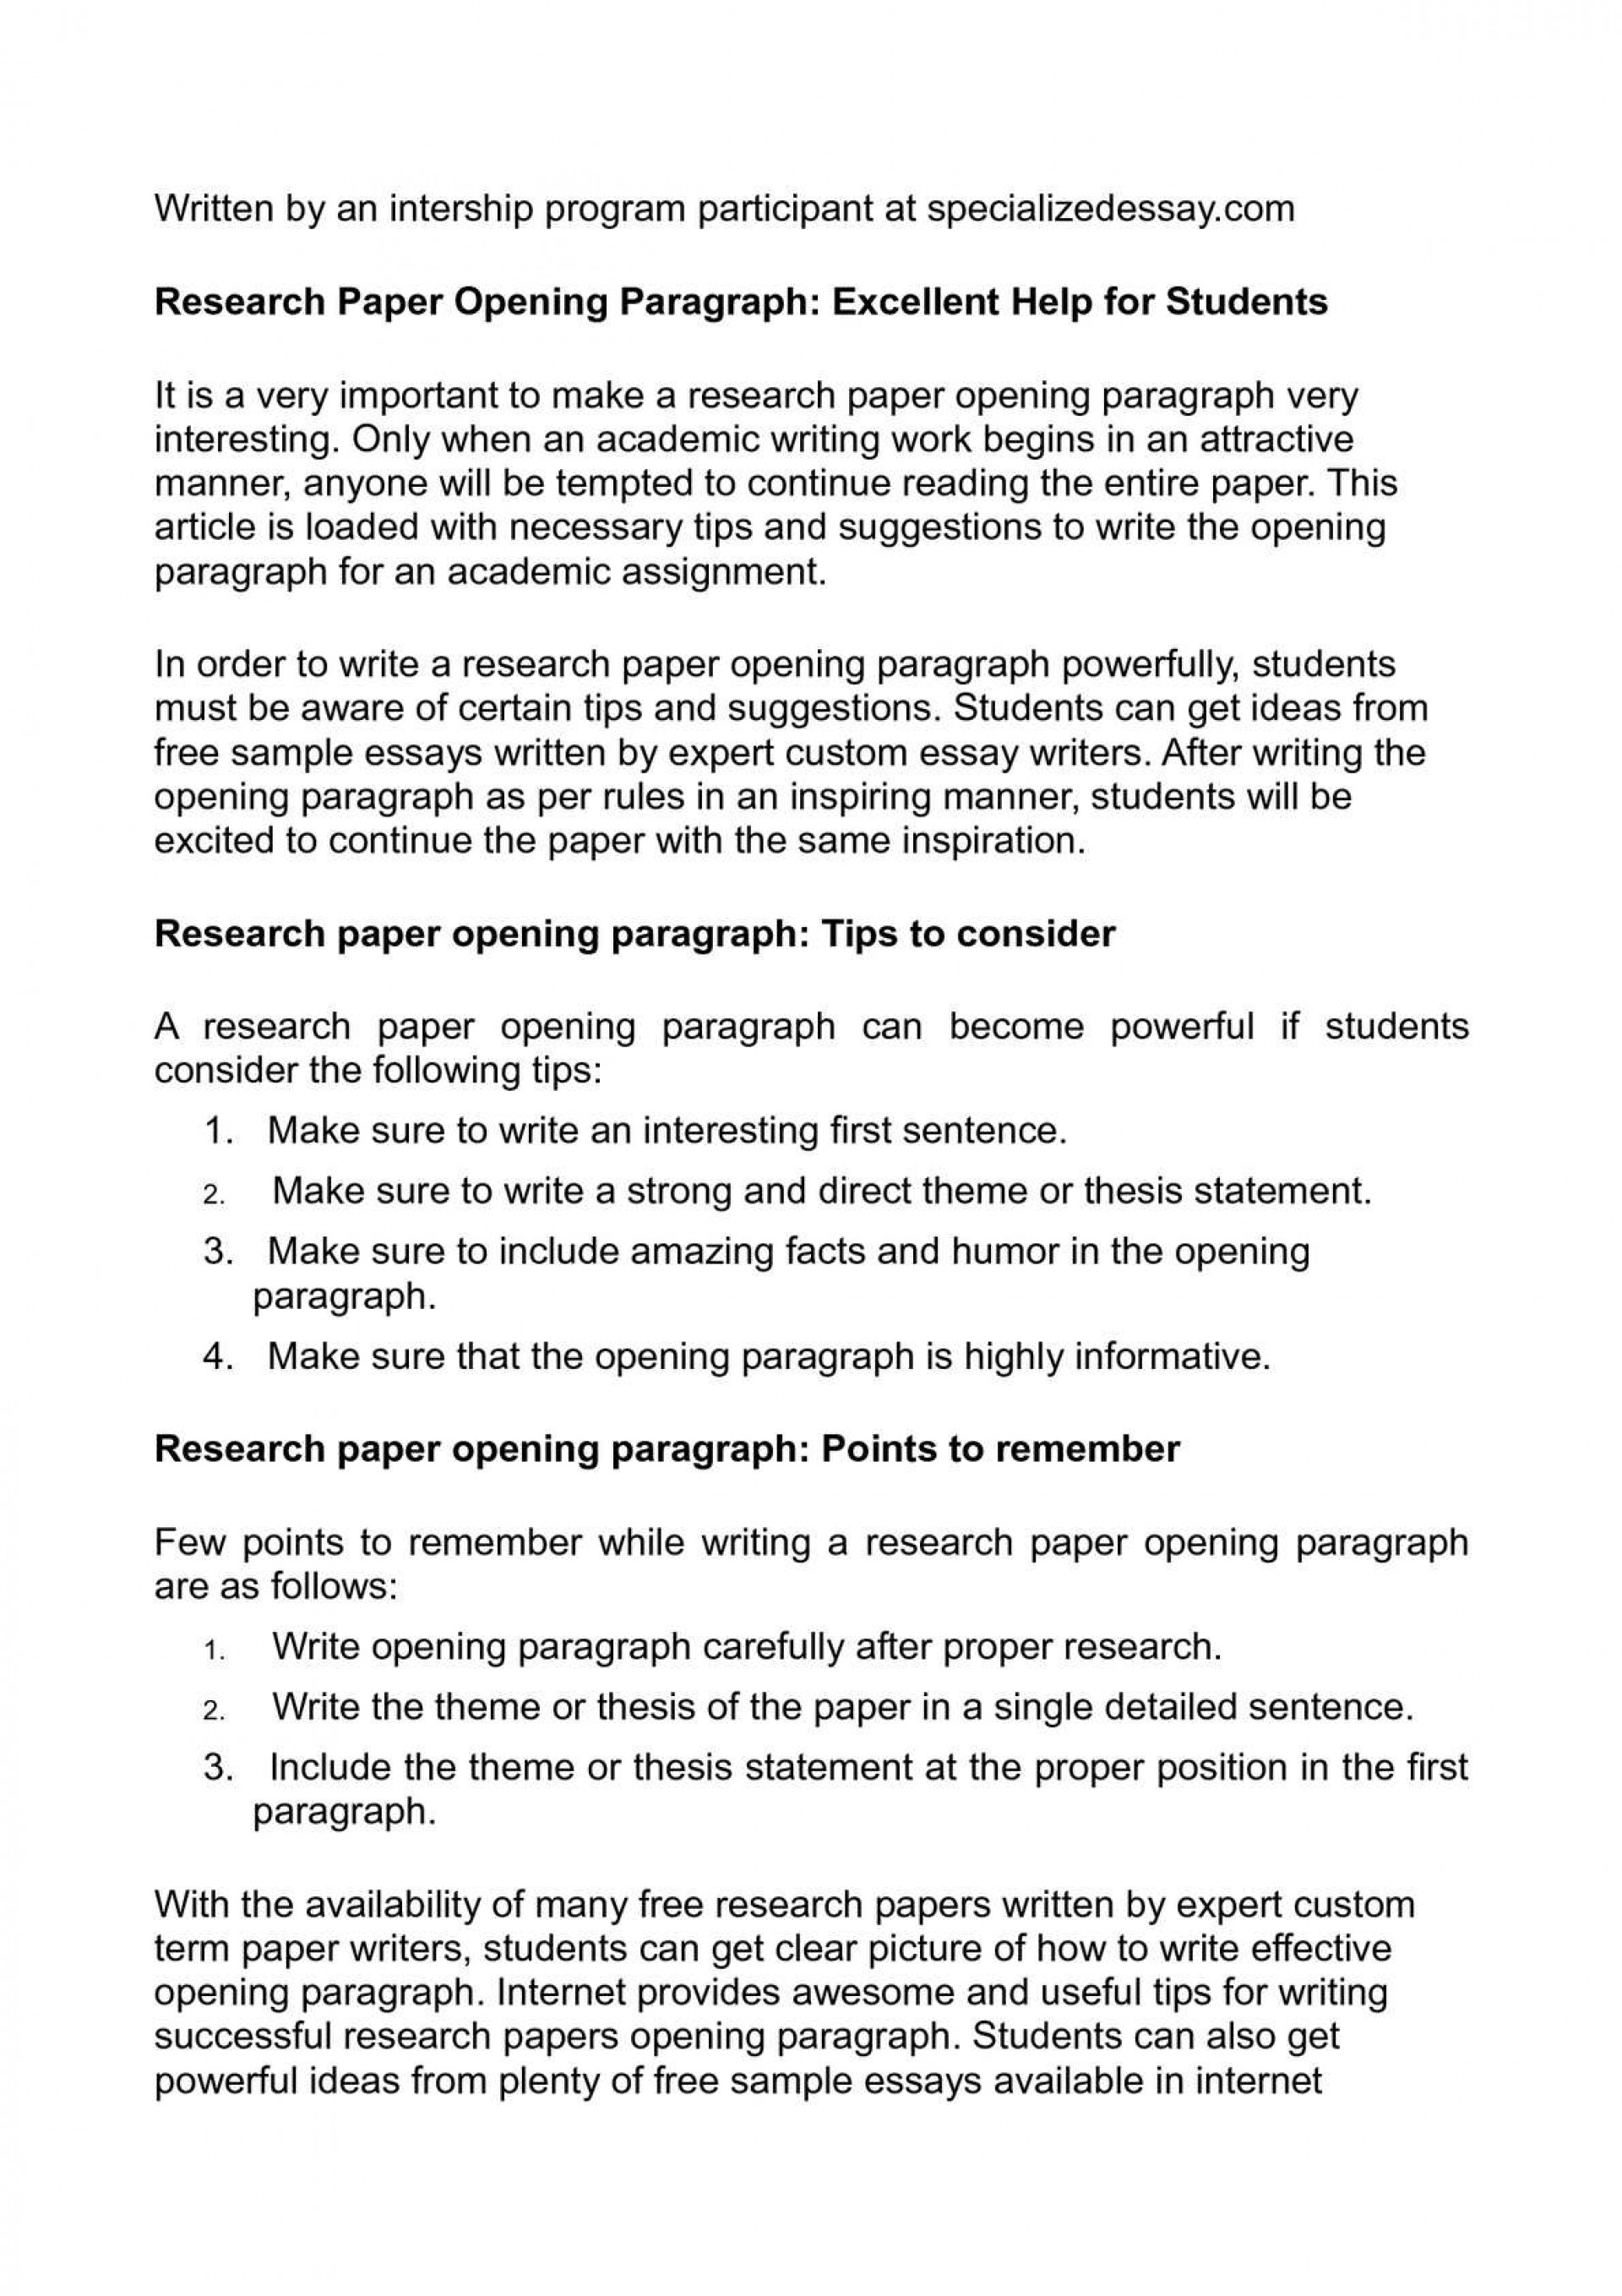 009 How To Make An Introduction Paragraph Of Research Paper Unforgettable A Writing For 1920